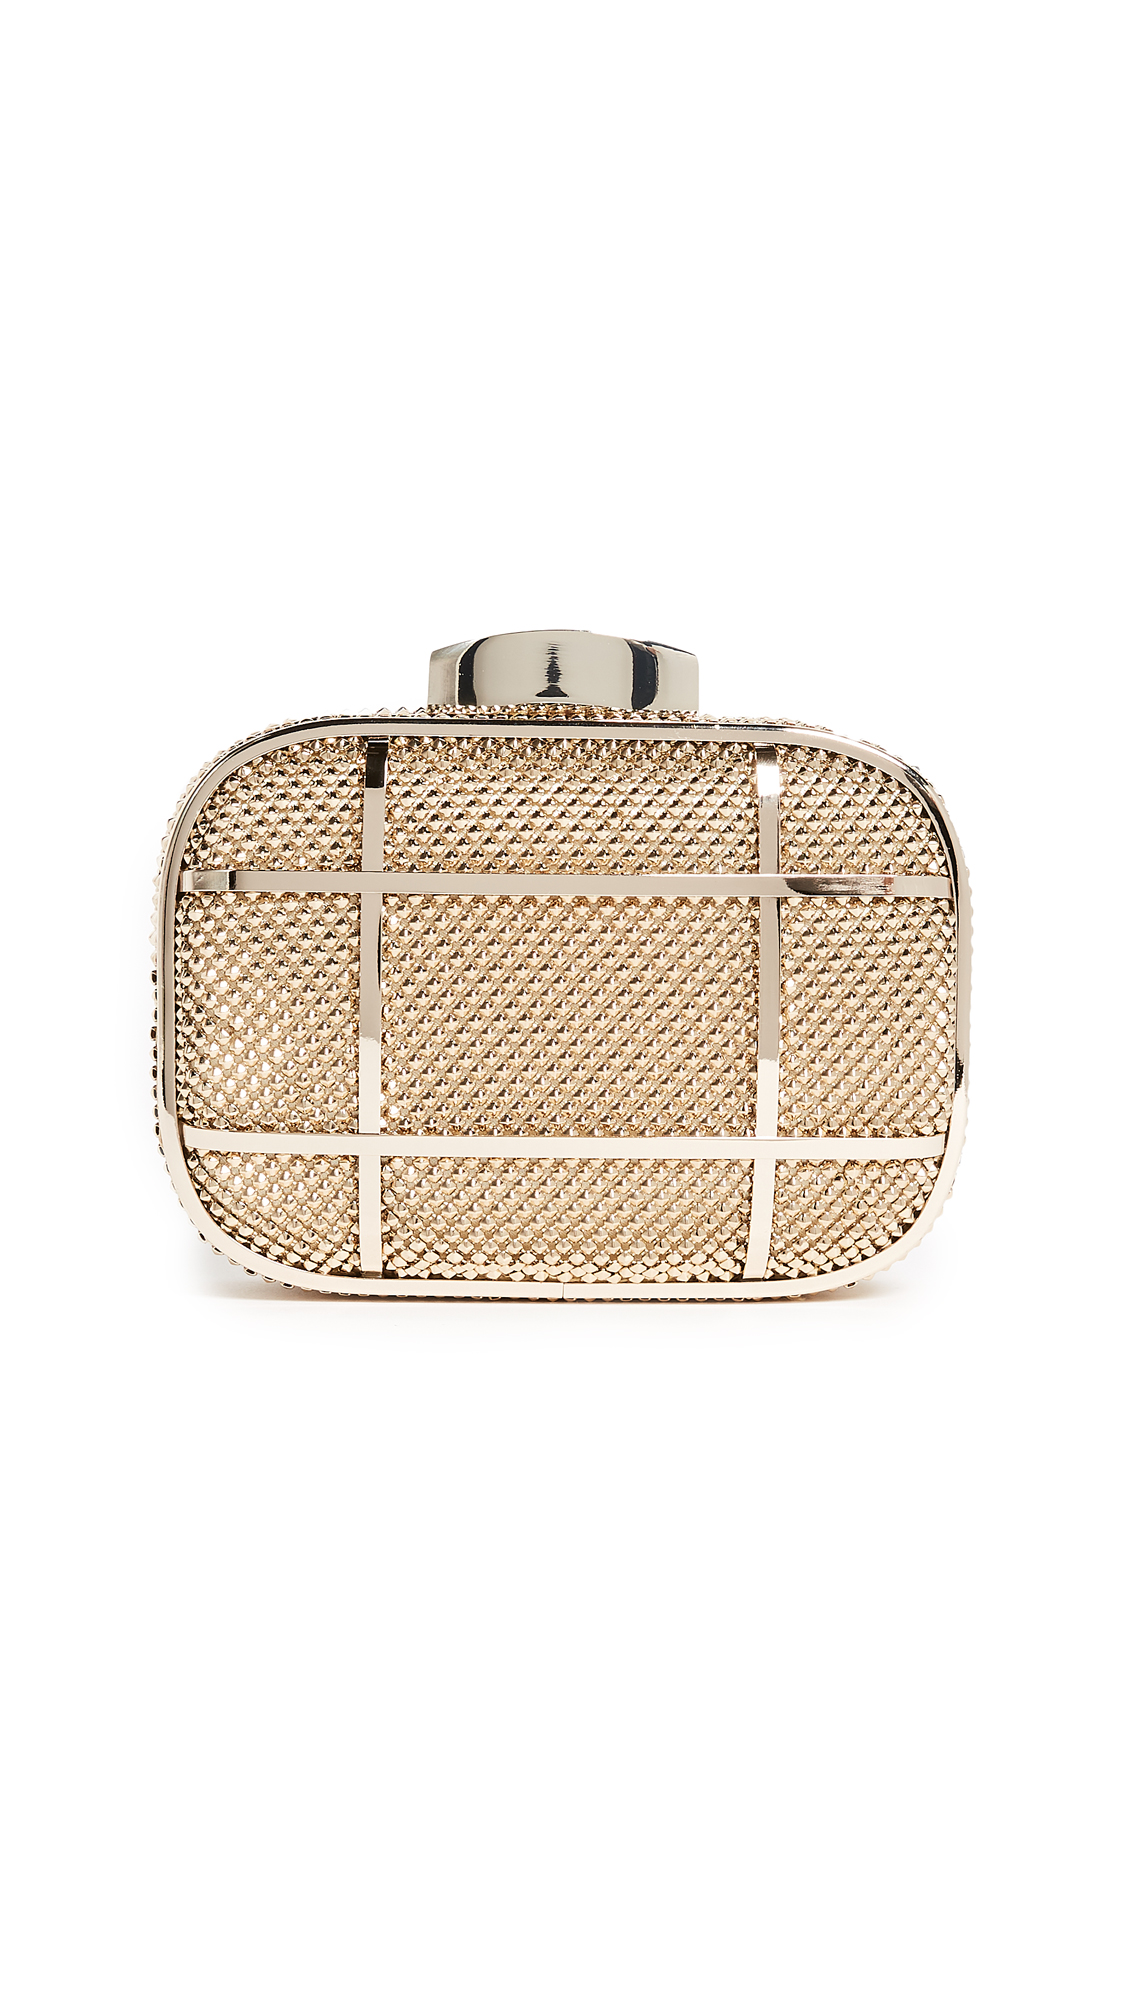 Whiting & Davis Cage Minaudiere Clutch - Gold